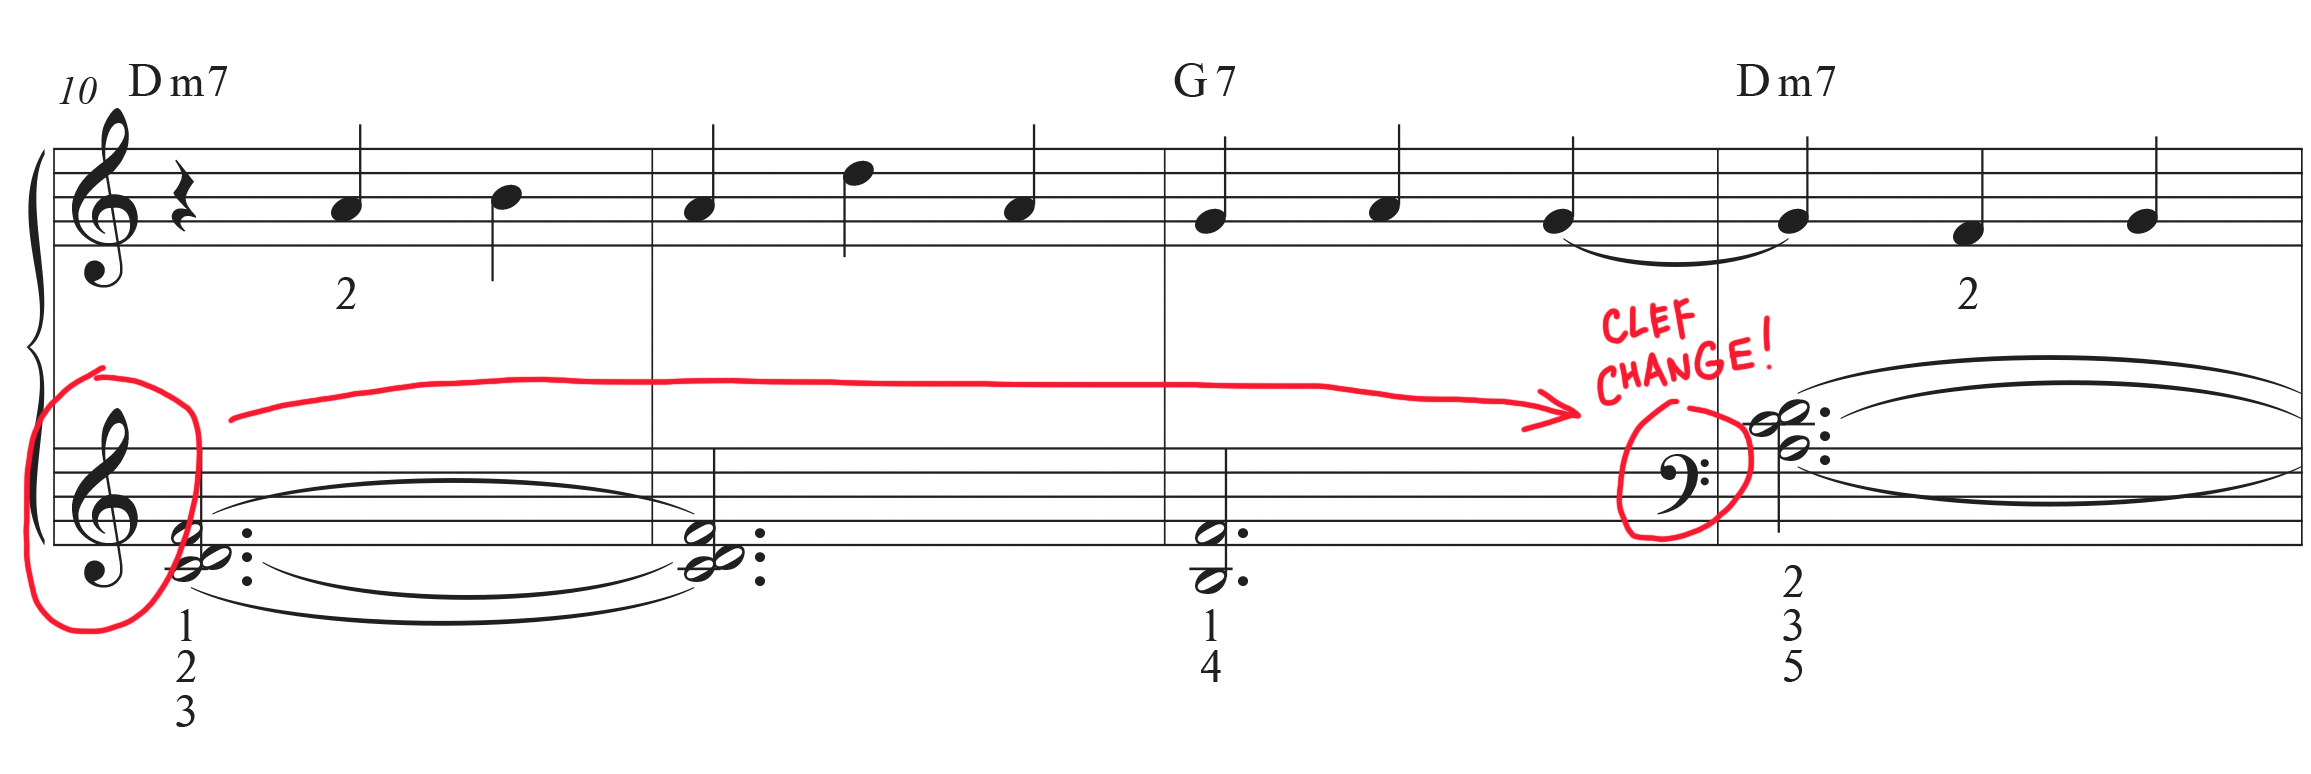 Easy sheet music for Clair de. Lune with clef change in measure 13 highlighted in red.